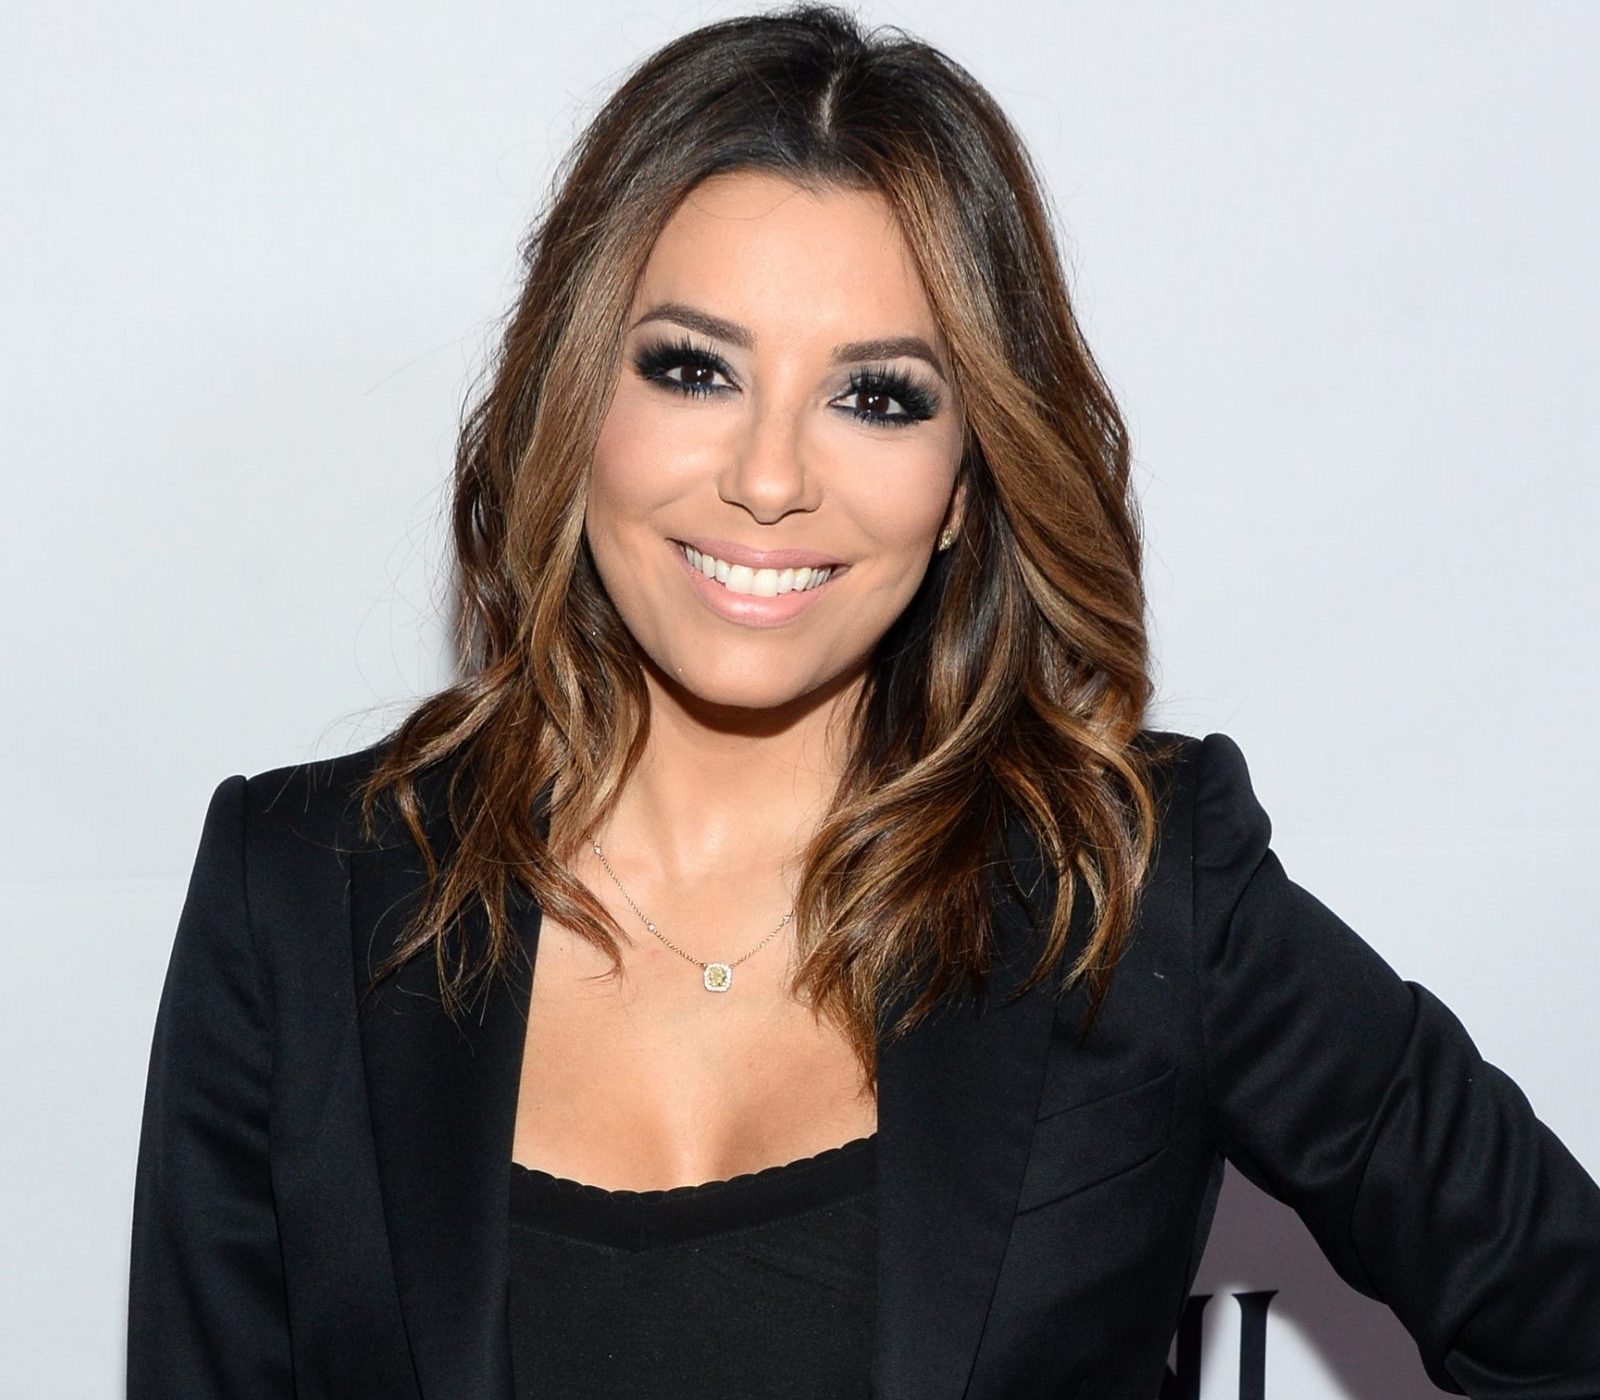 070716 eva longoria 2000 e1614696722585 25 Things You Didn't Know About Magnum, P.I.